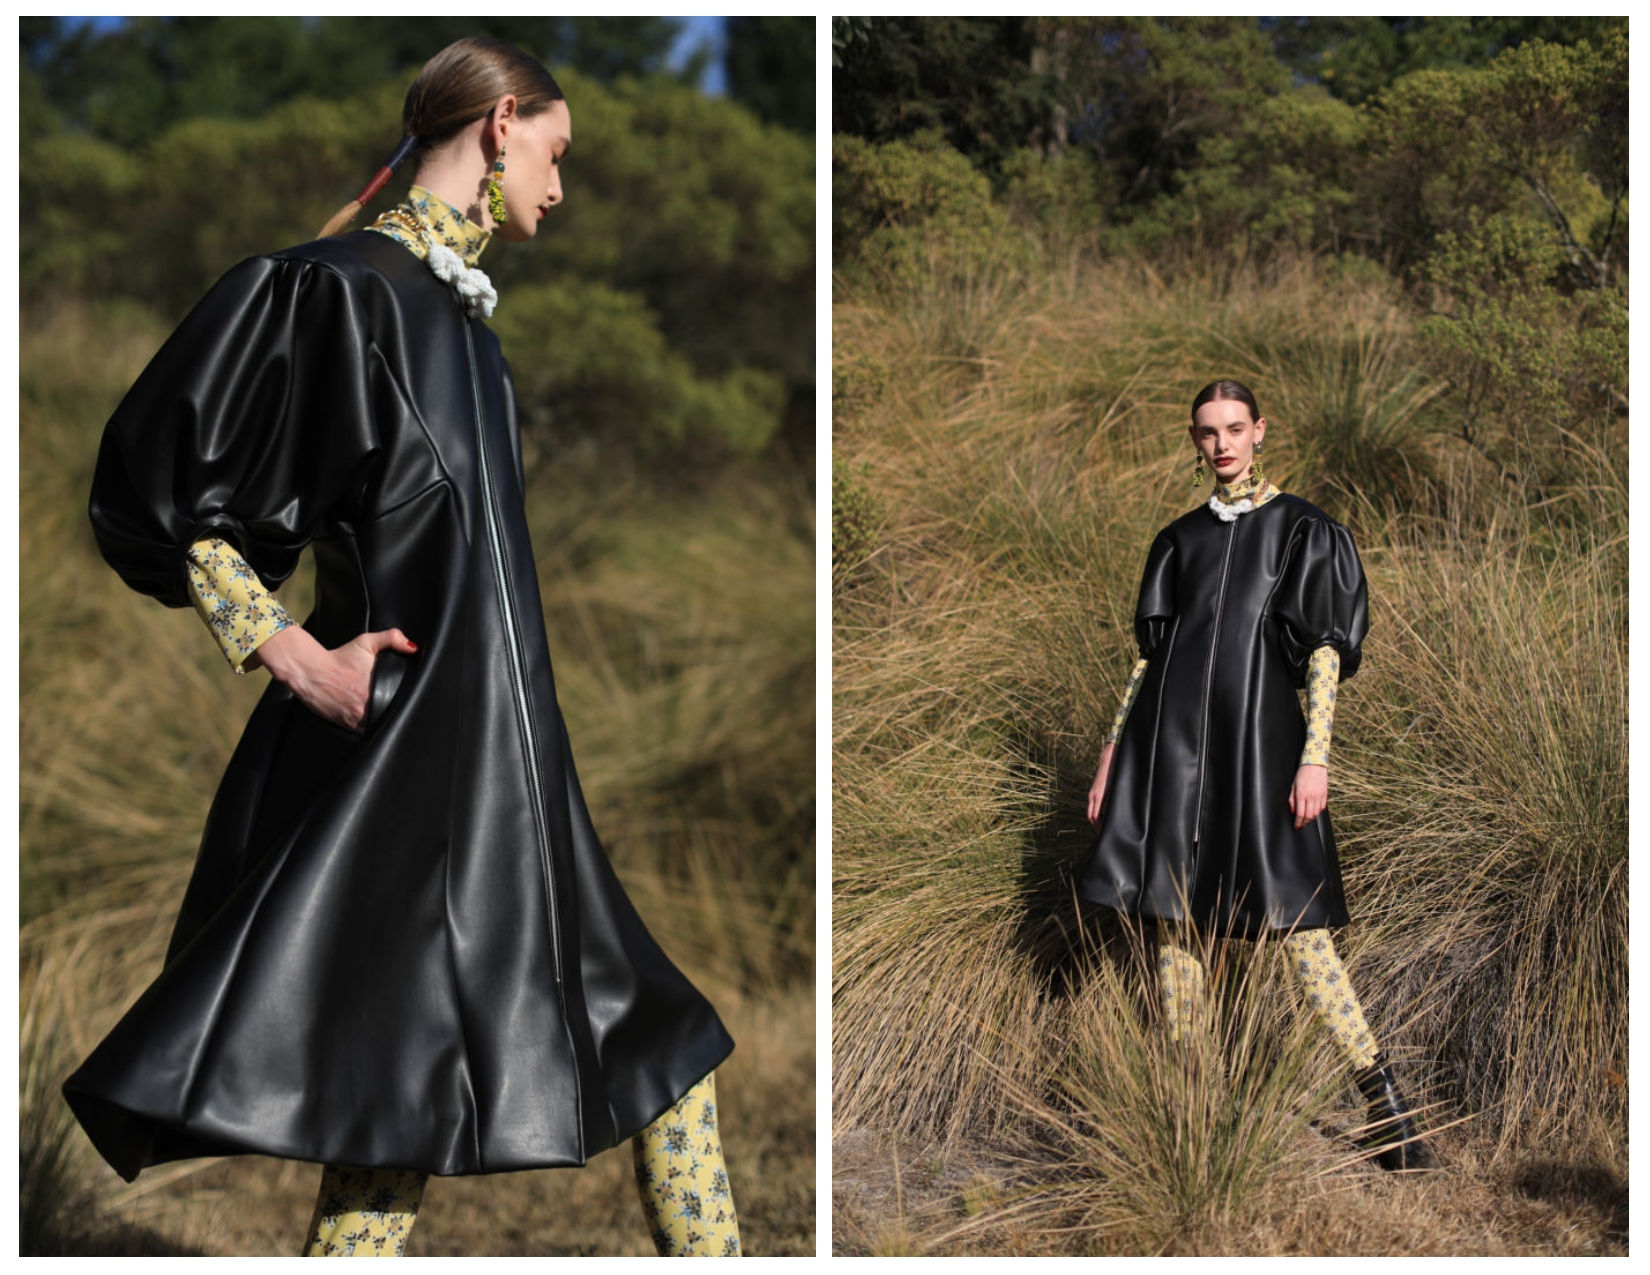 21AW look-book (1)_page-0014.jpg